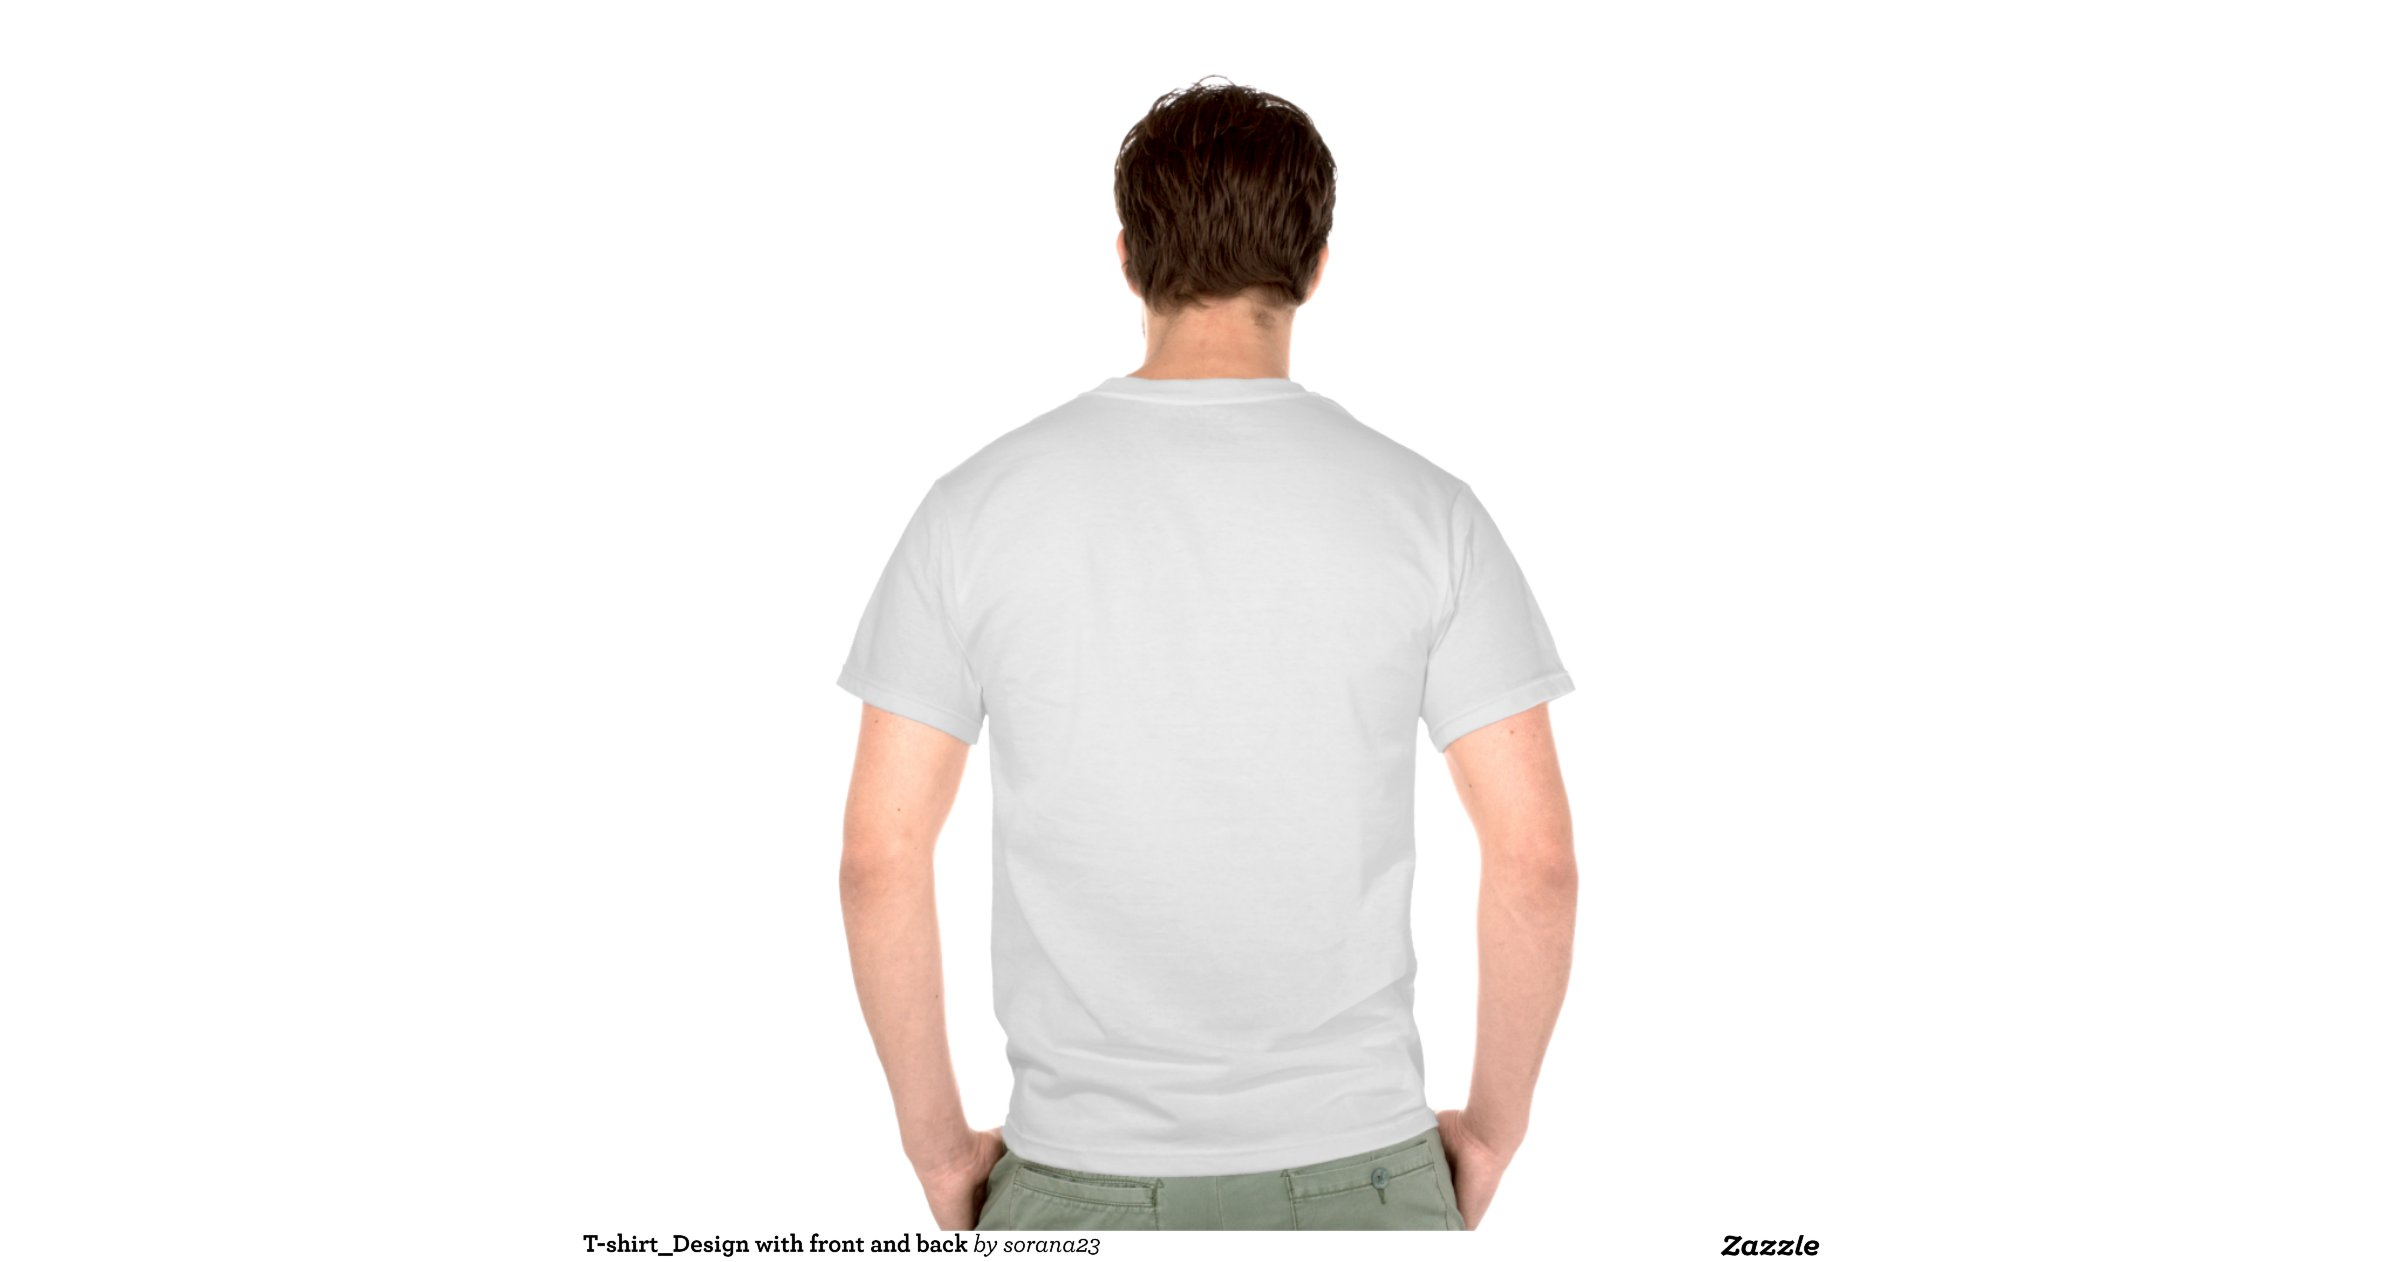 T Shirt Design With Front And Back Shirts Zazzle